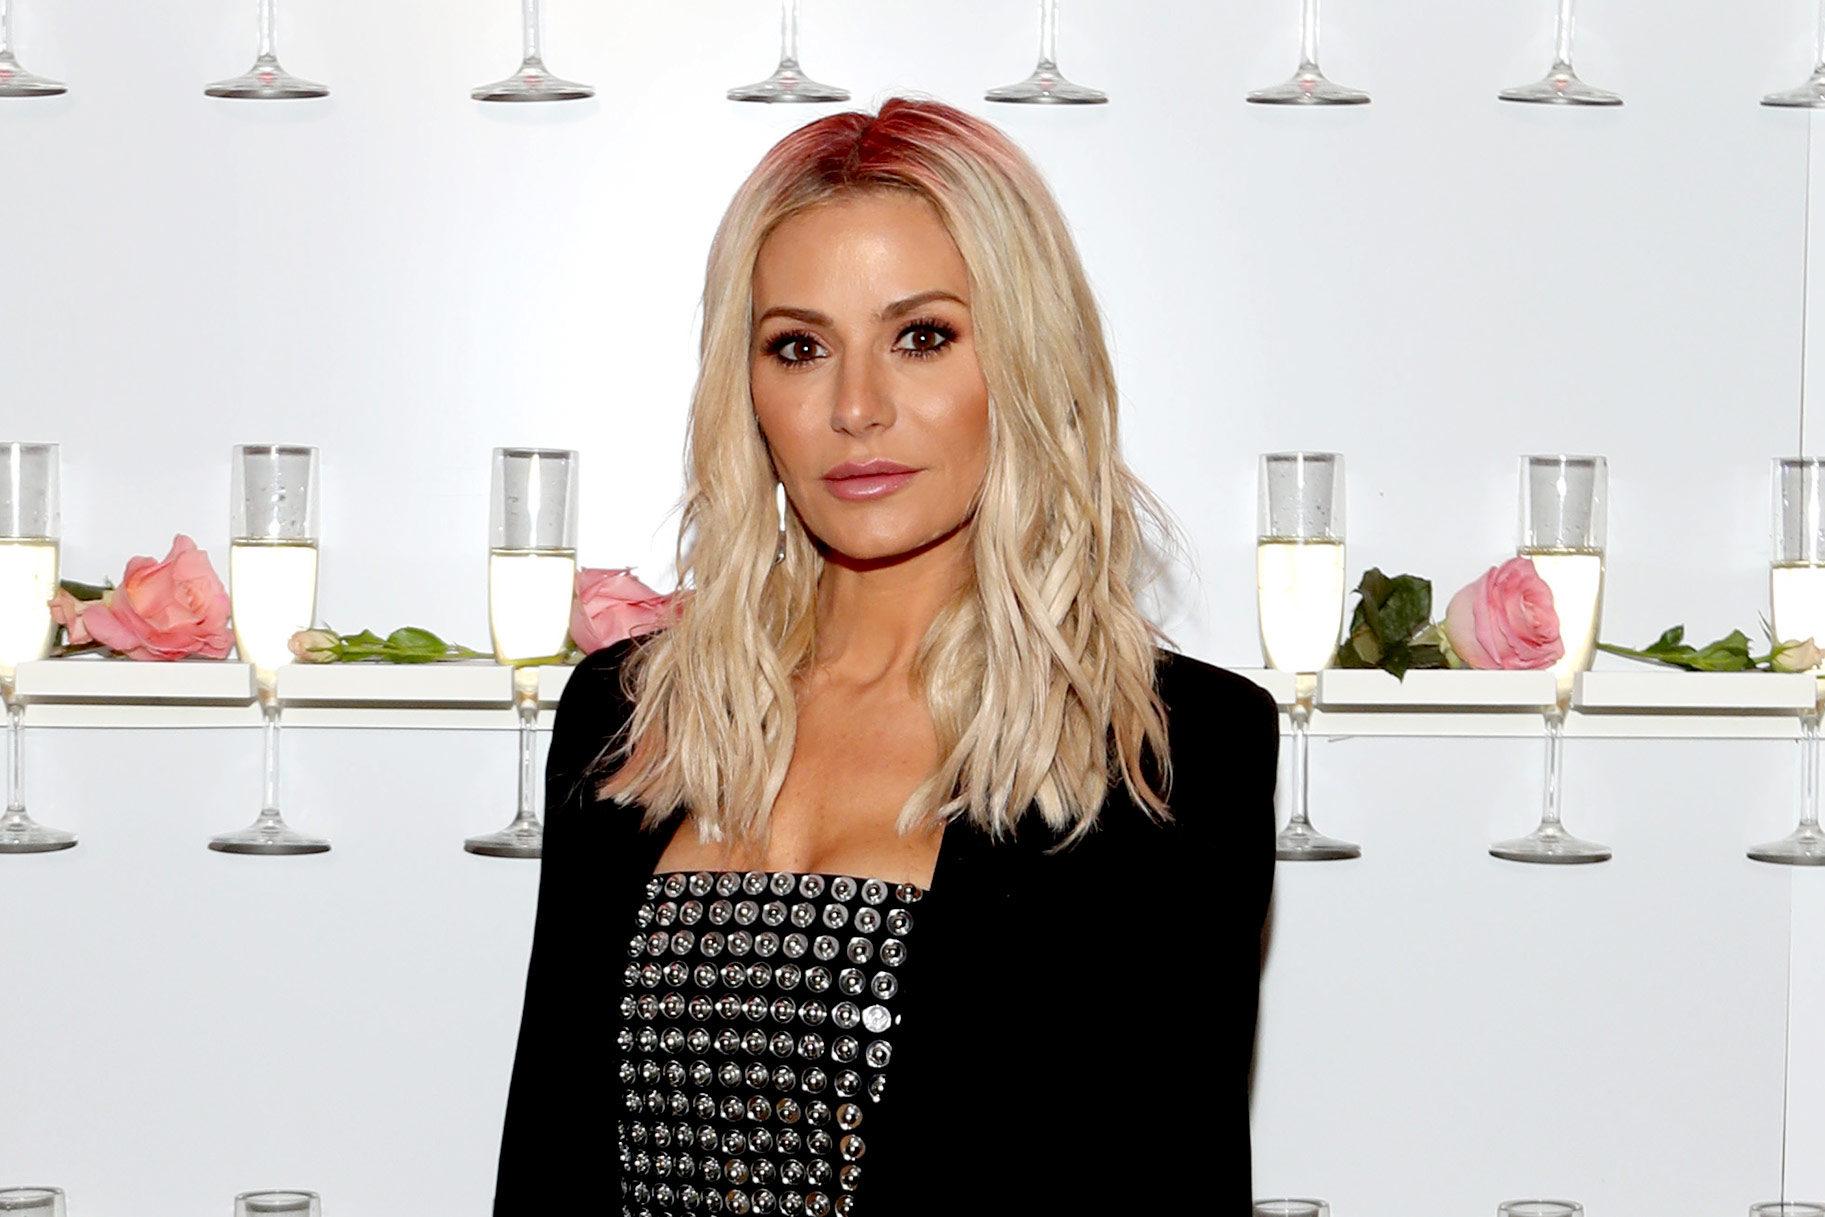 Dorit Kemsley Shares RHOBH Season 9 Reunion Hair